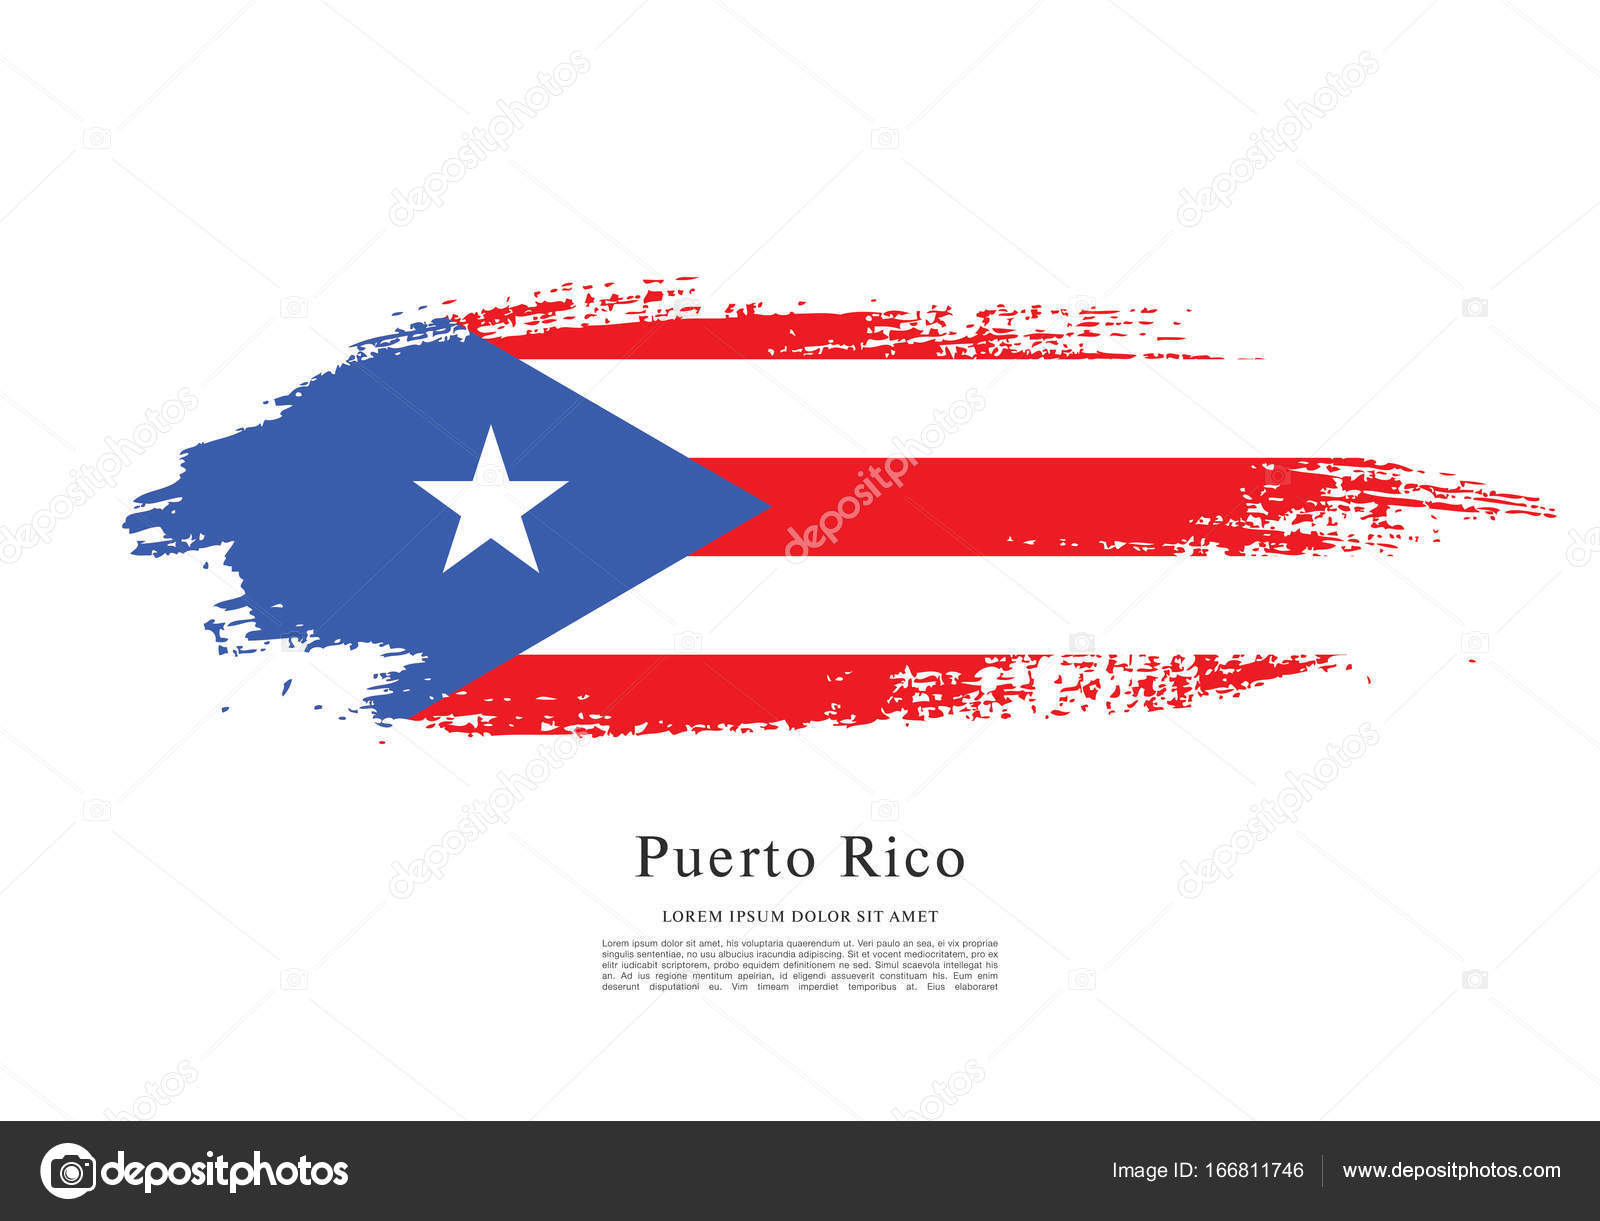 Flag of puerto rico flag stock vector igorvkv 166811746 flag of puerto rico flag stock vector biocorpaavc Image collections